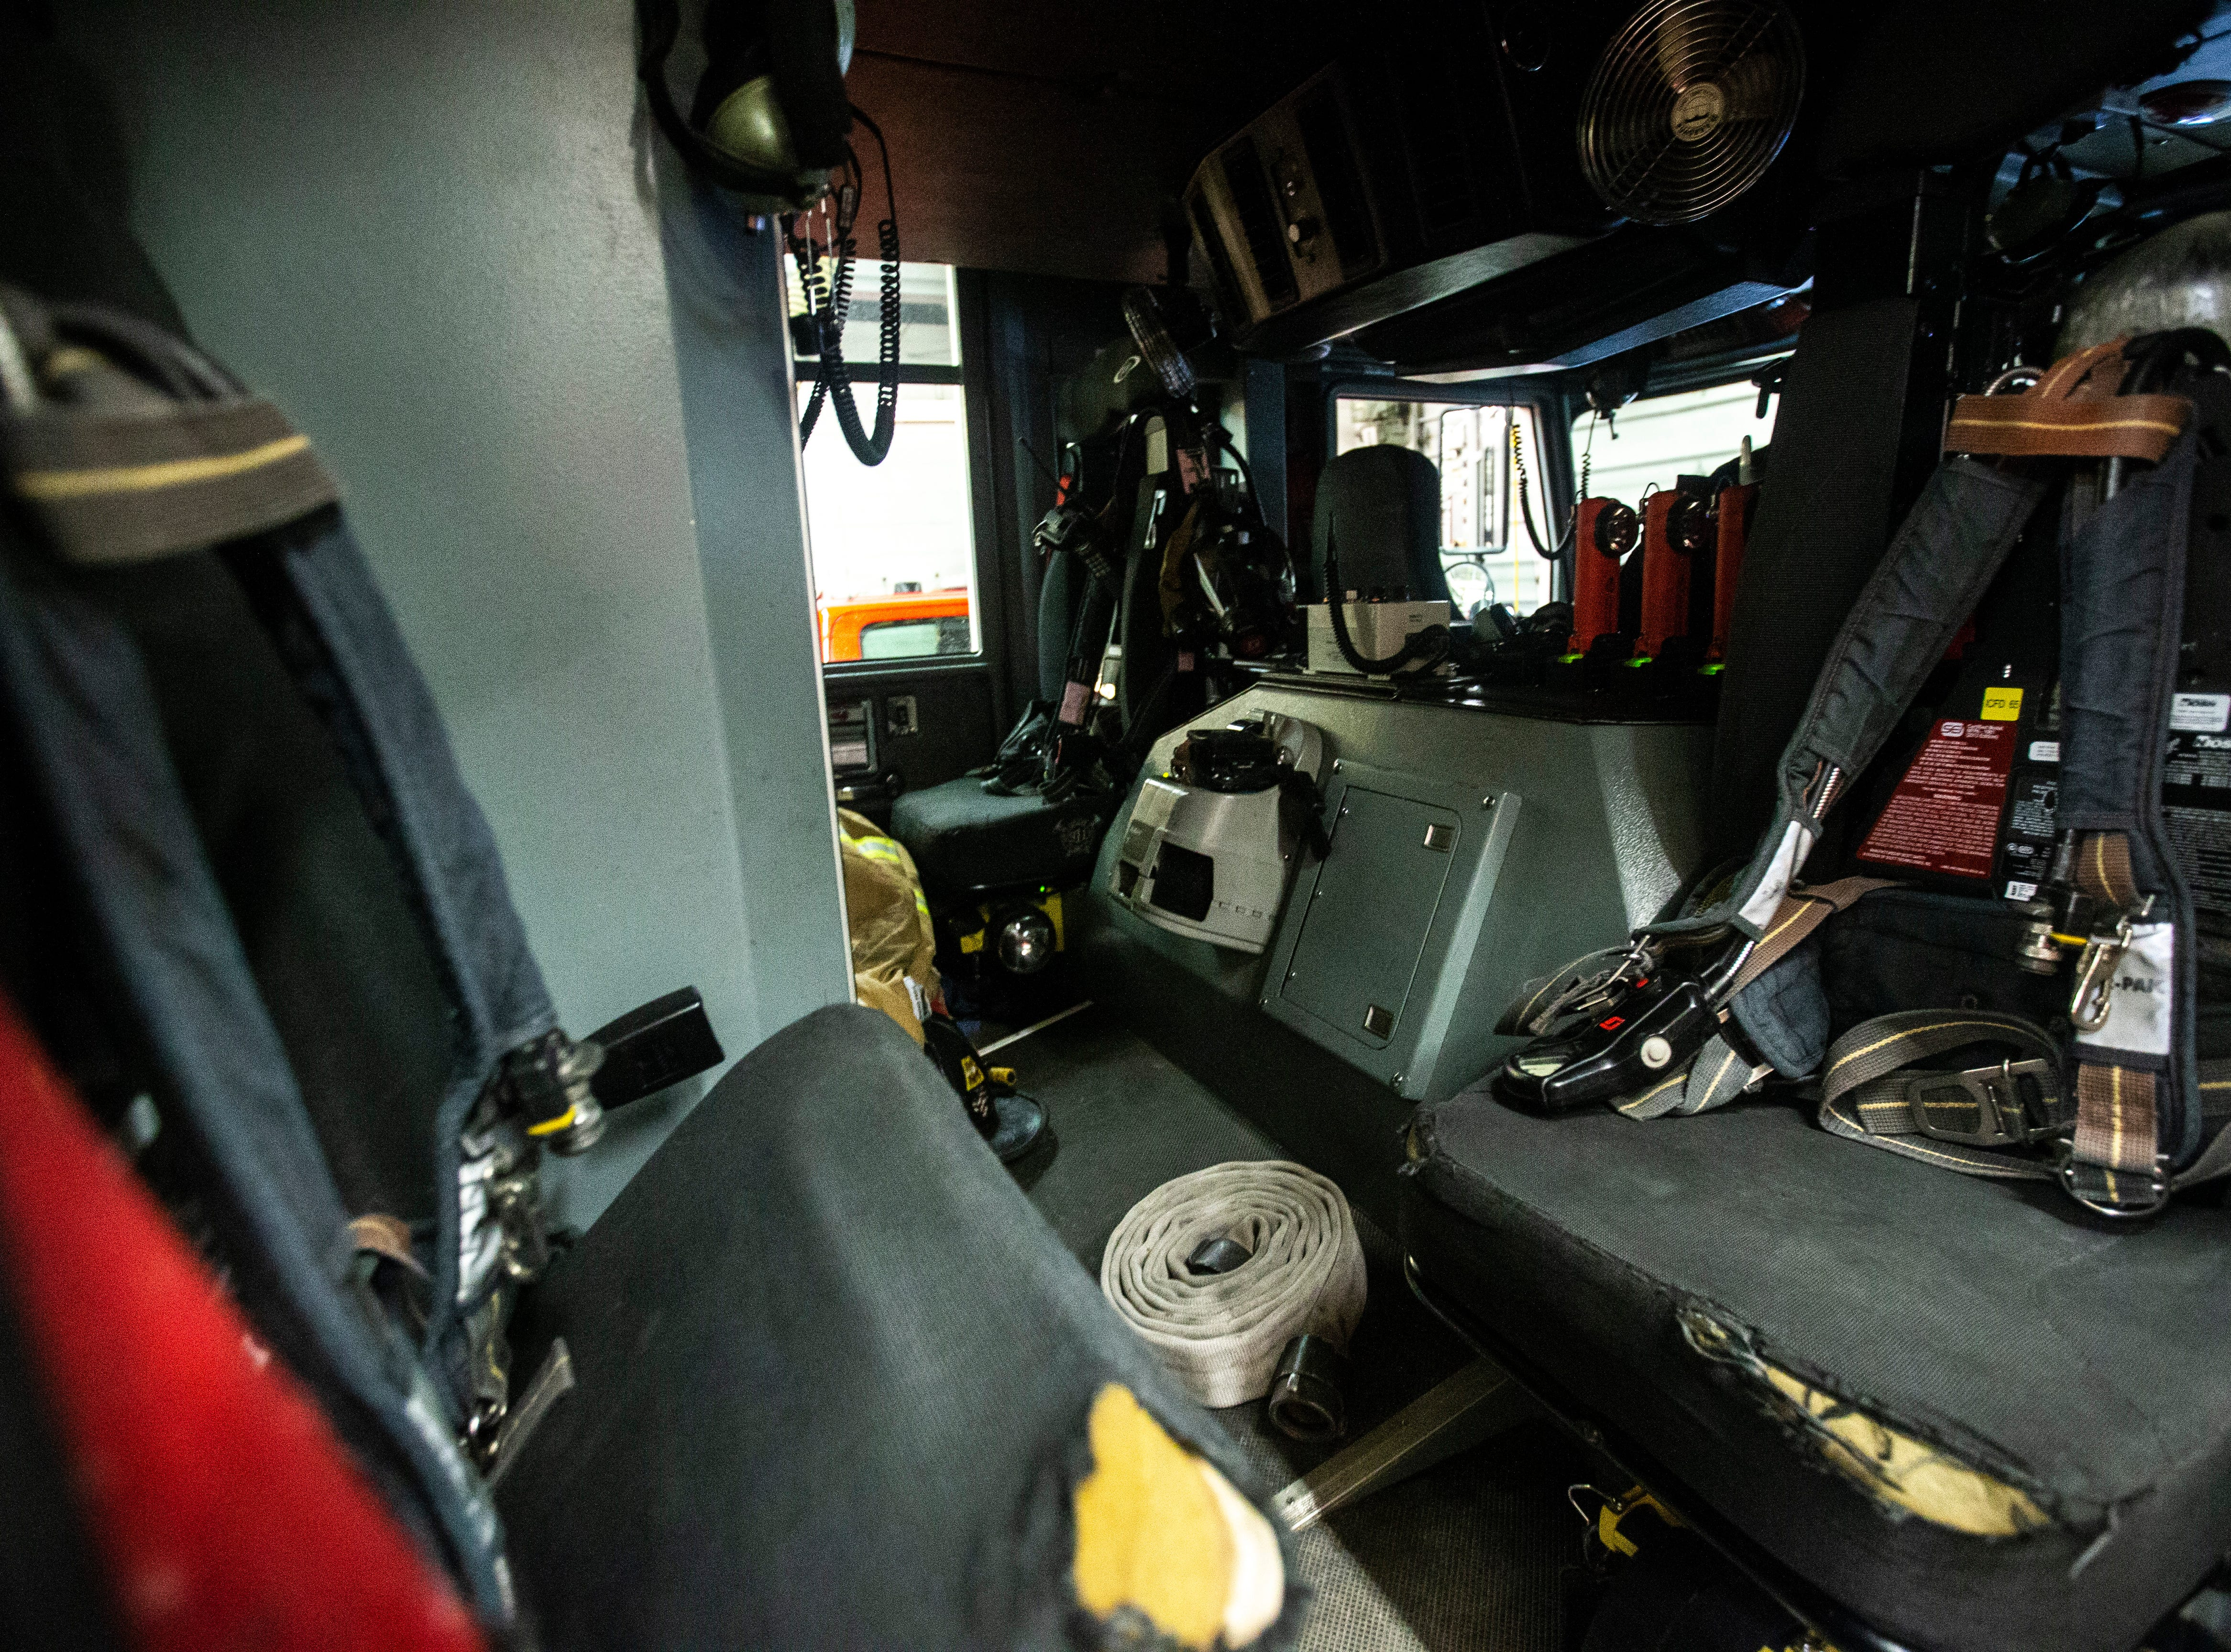 The back seat of a Iowa City Fire Department engine is seen on Thursday, March 7, 2019, inside Fire Station No. 1, at 10 South Gilbert Street in downtown Iowa City, Iowa. The station was opened January 1, 1961, the same day the previous station of 80 years was retired.